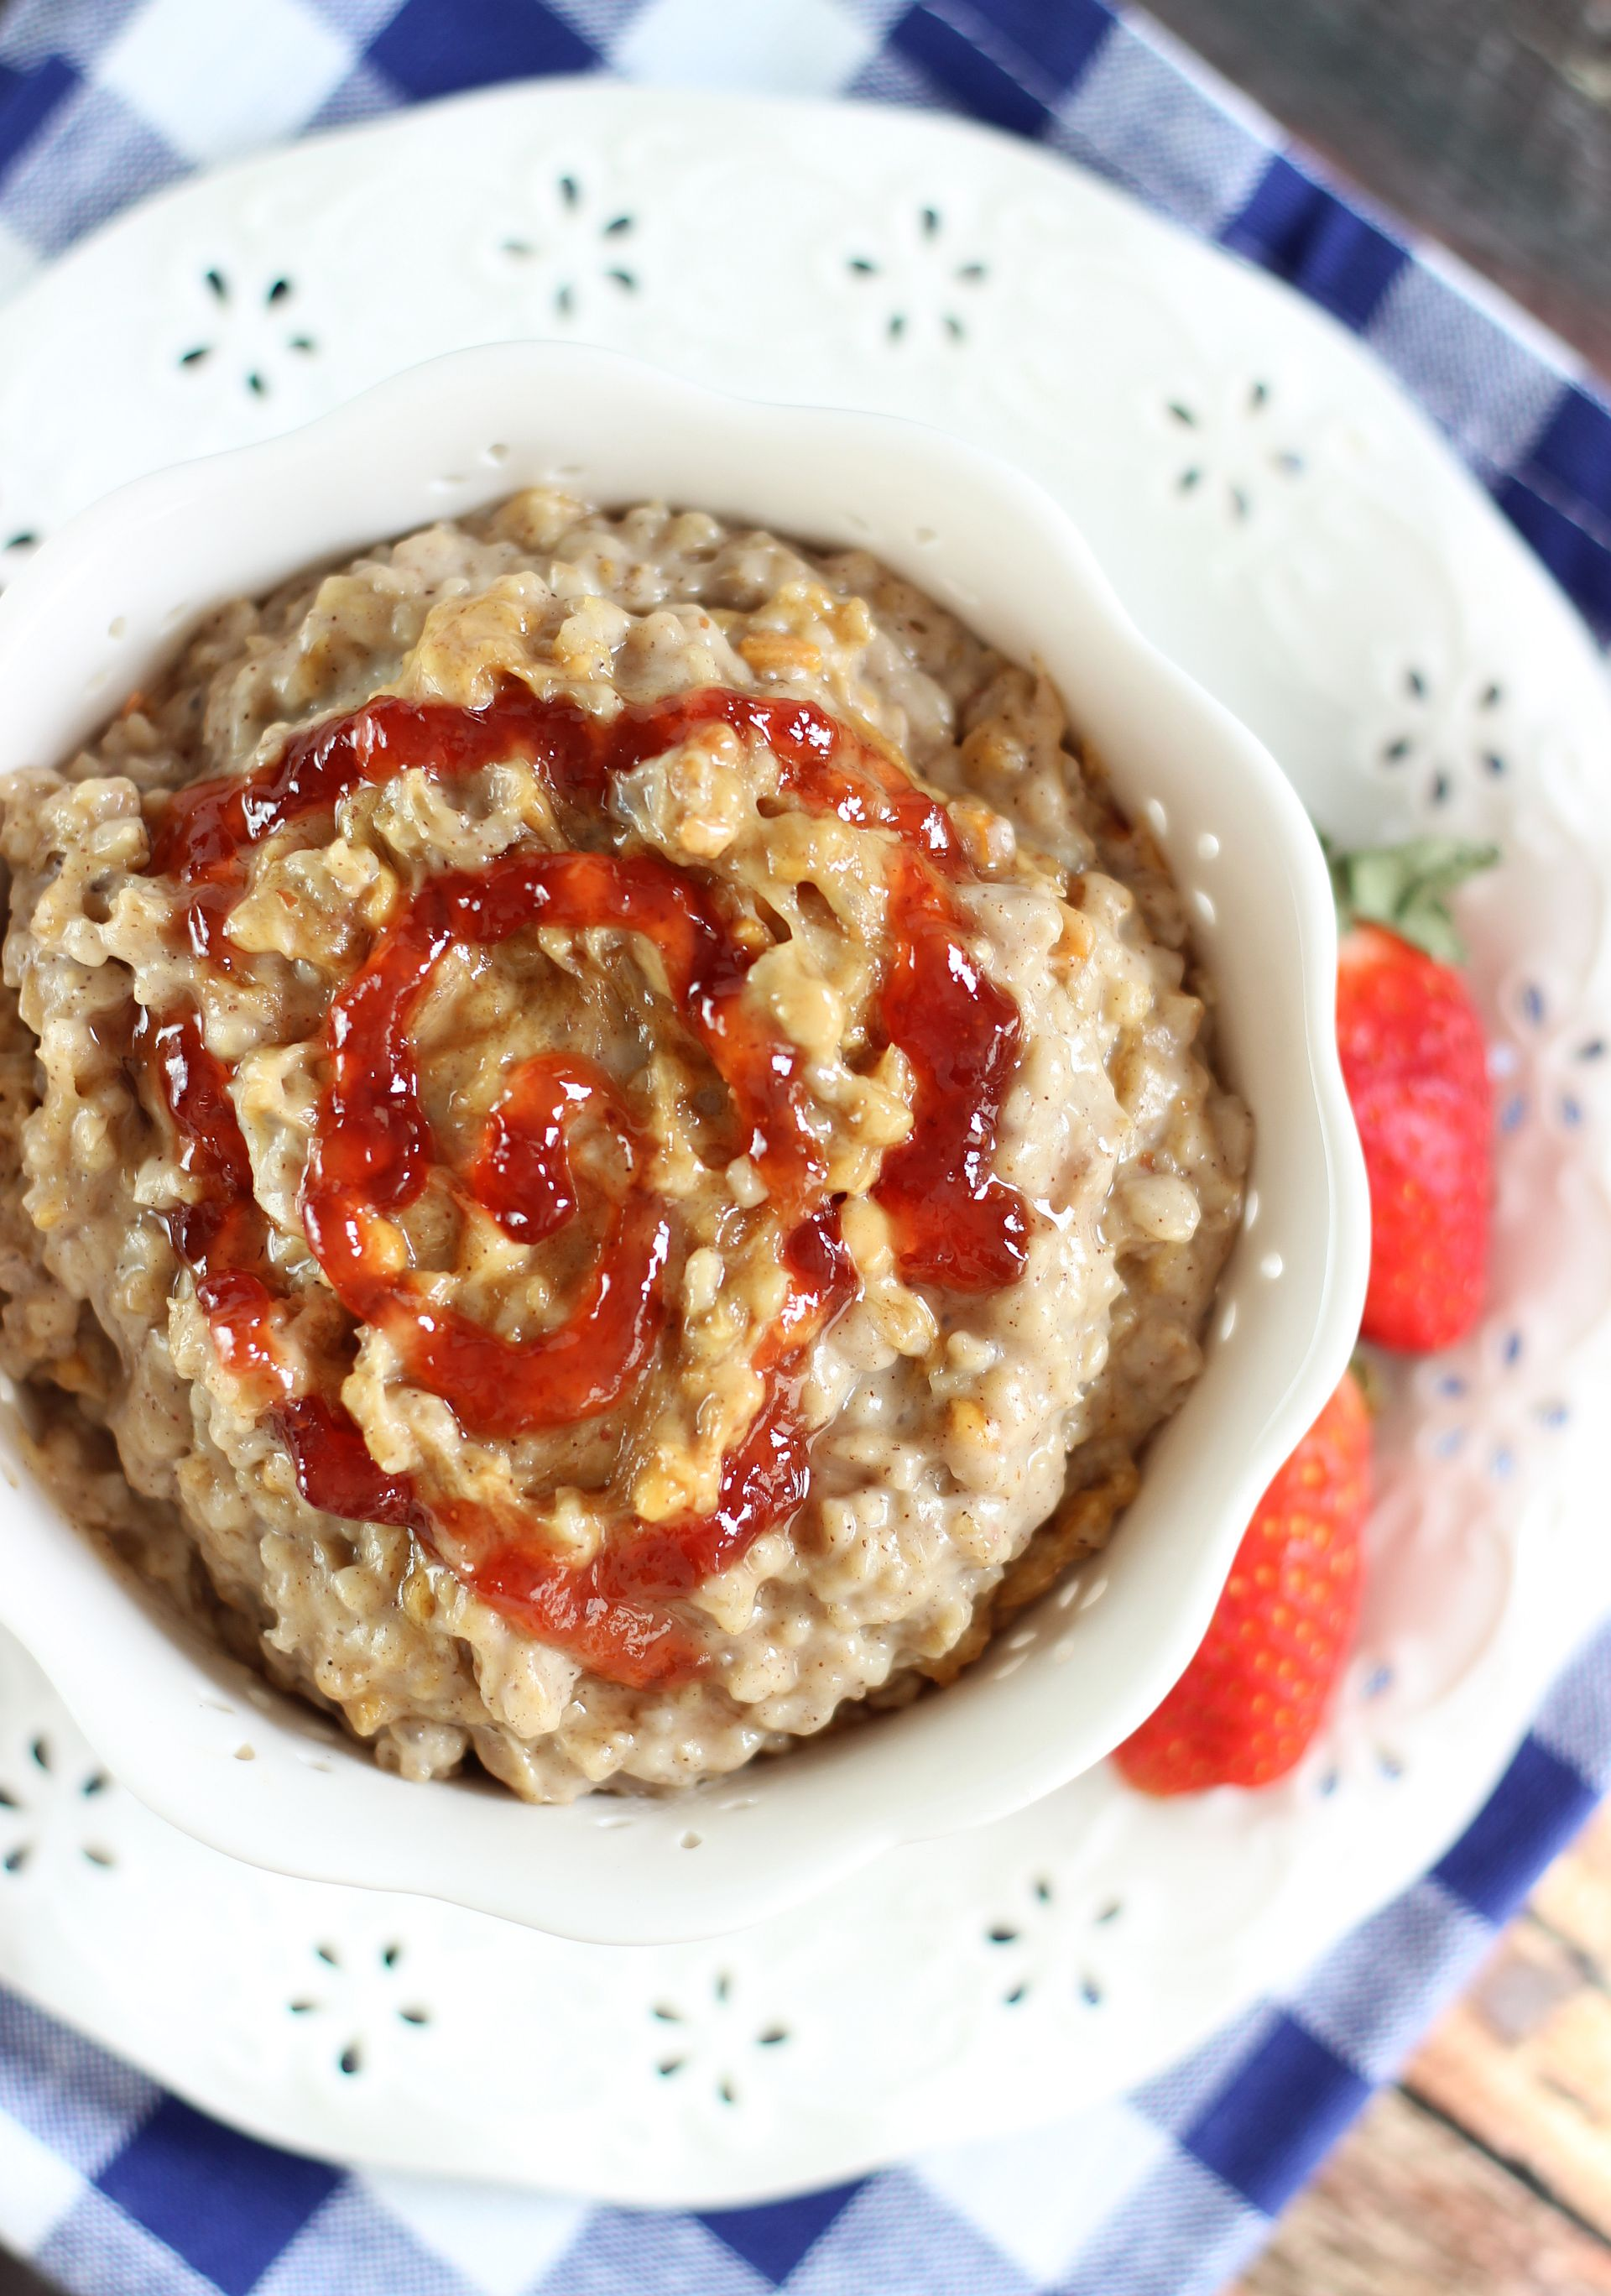 Peanut Butter and Jelly Slow Cooker Steel Cut Oats